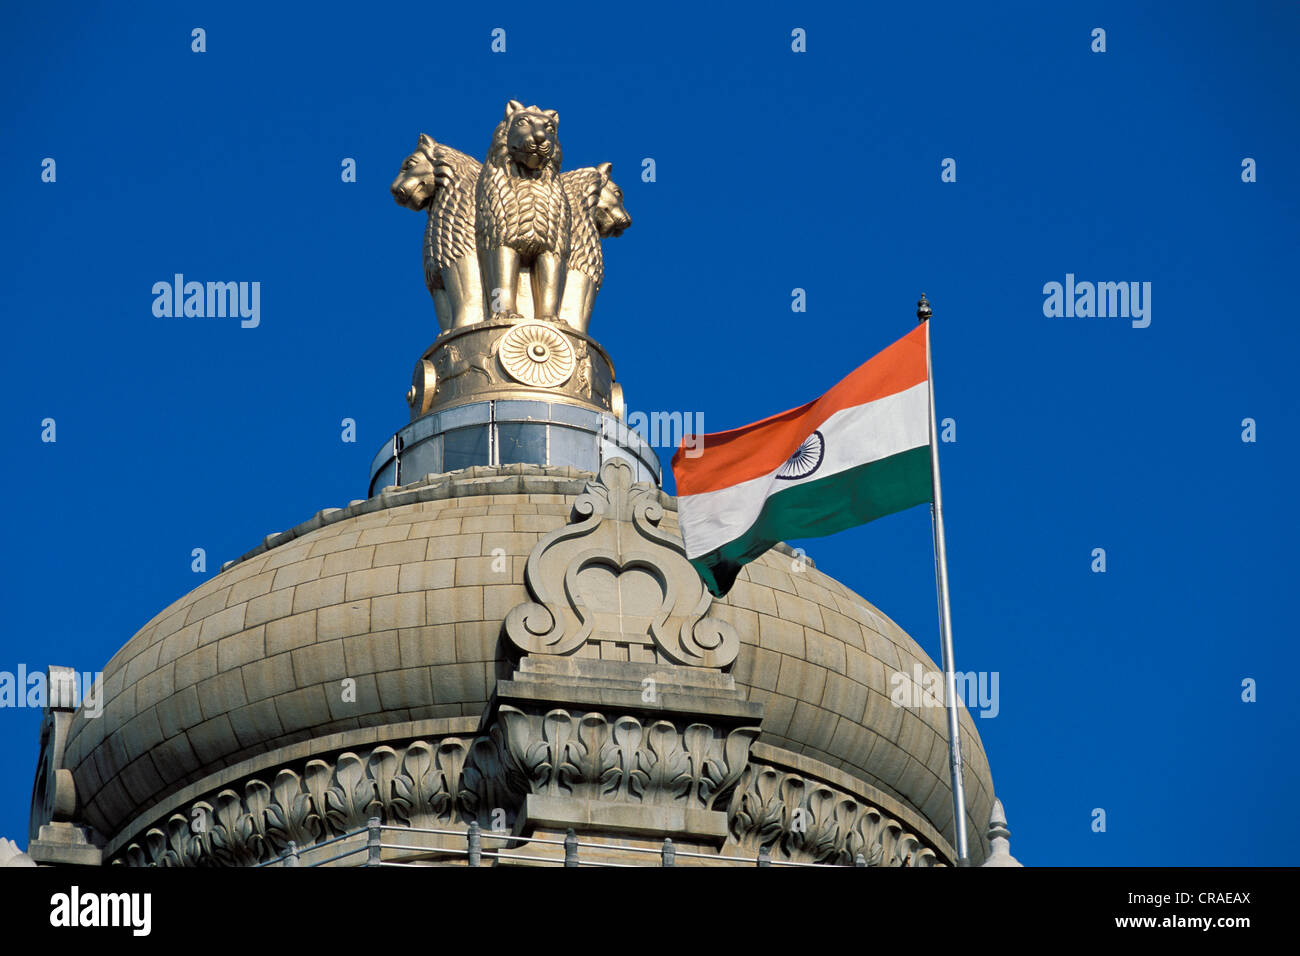 Lion capital national emblem of india state parliament house stock lion capital national emblem of india state parliament house bangalore karnataka south india india asia biocorpaavc Image collections